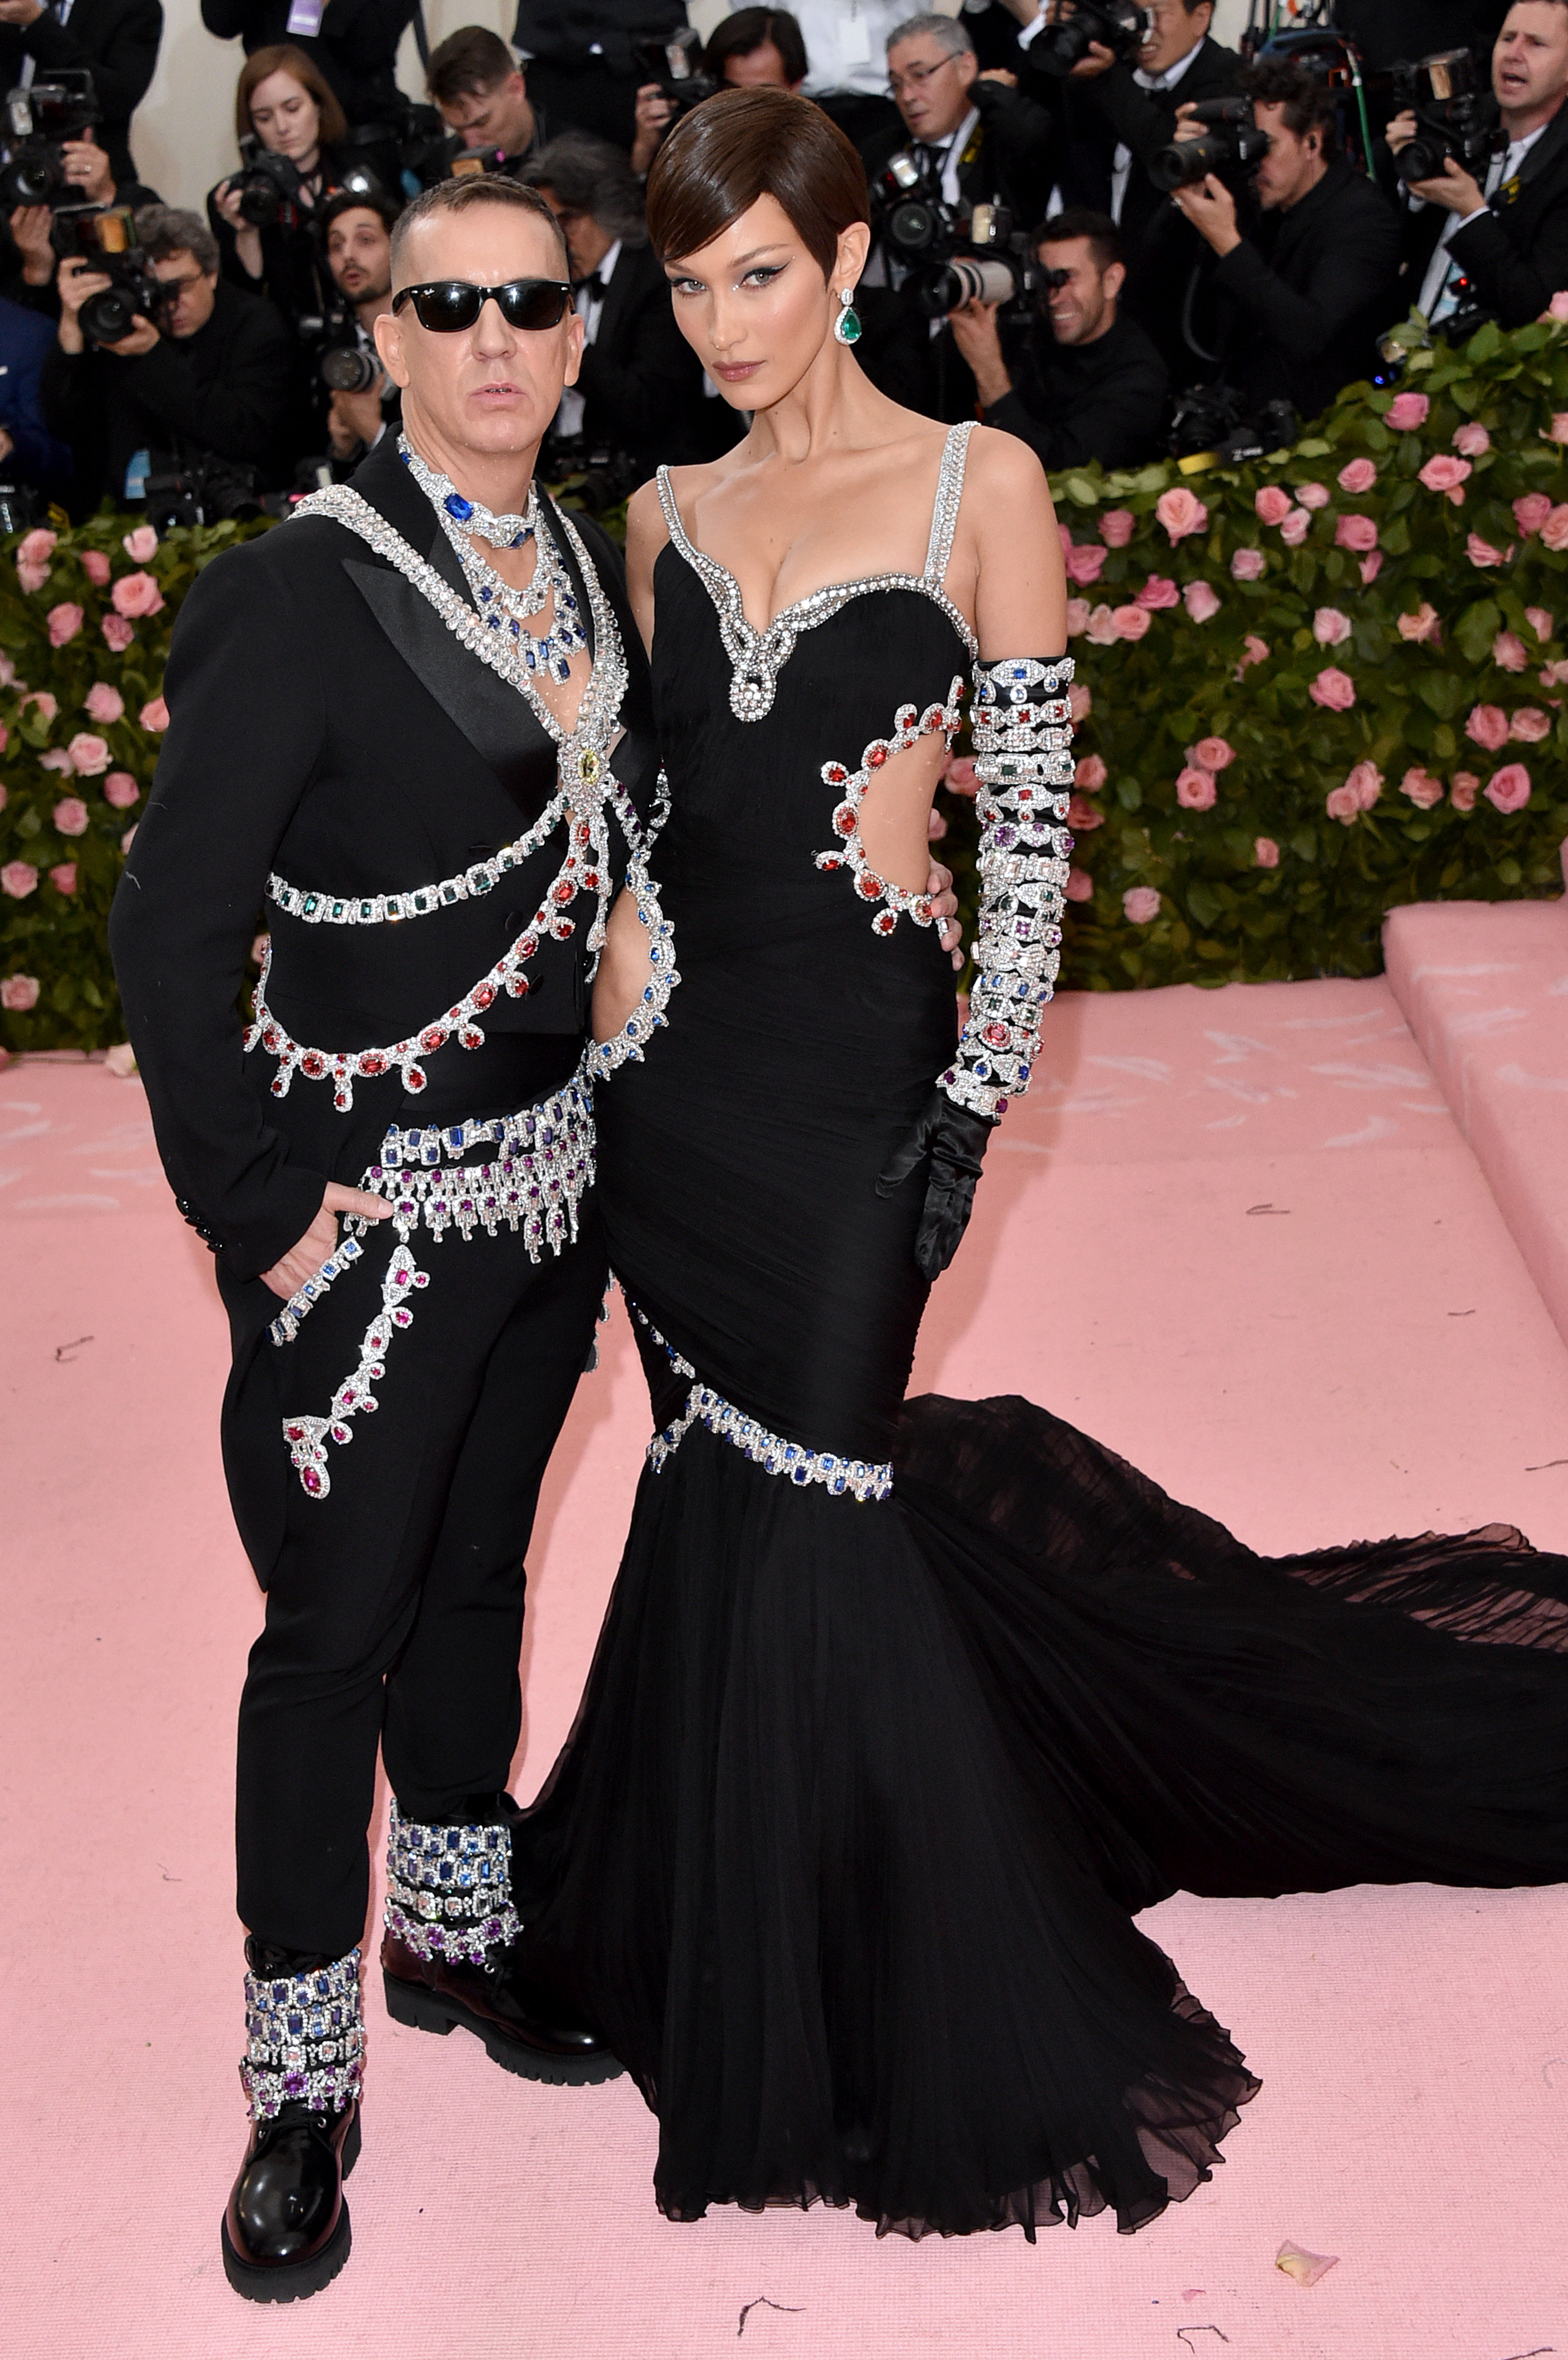 NEW YORK, NEW YORK - MAY 06: Bella Hadid and Jeremy Scott attend The 2019 Met Gala Celebrating Camp: Notes on Fashion at Metropolitan Museum of Art on May 06, 2019 in New York City. (Photo by John Shearer/Getty Images for THR)